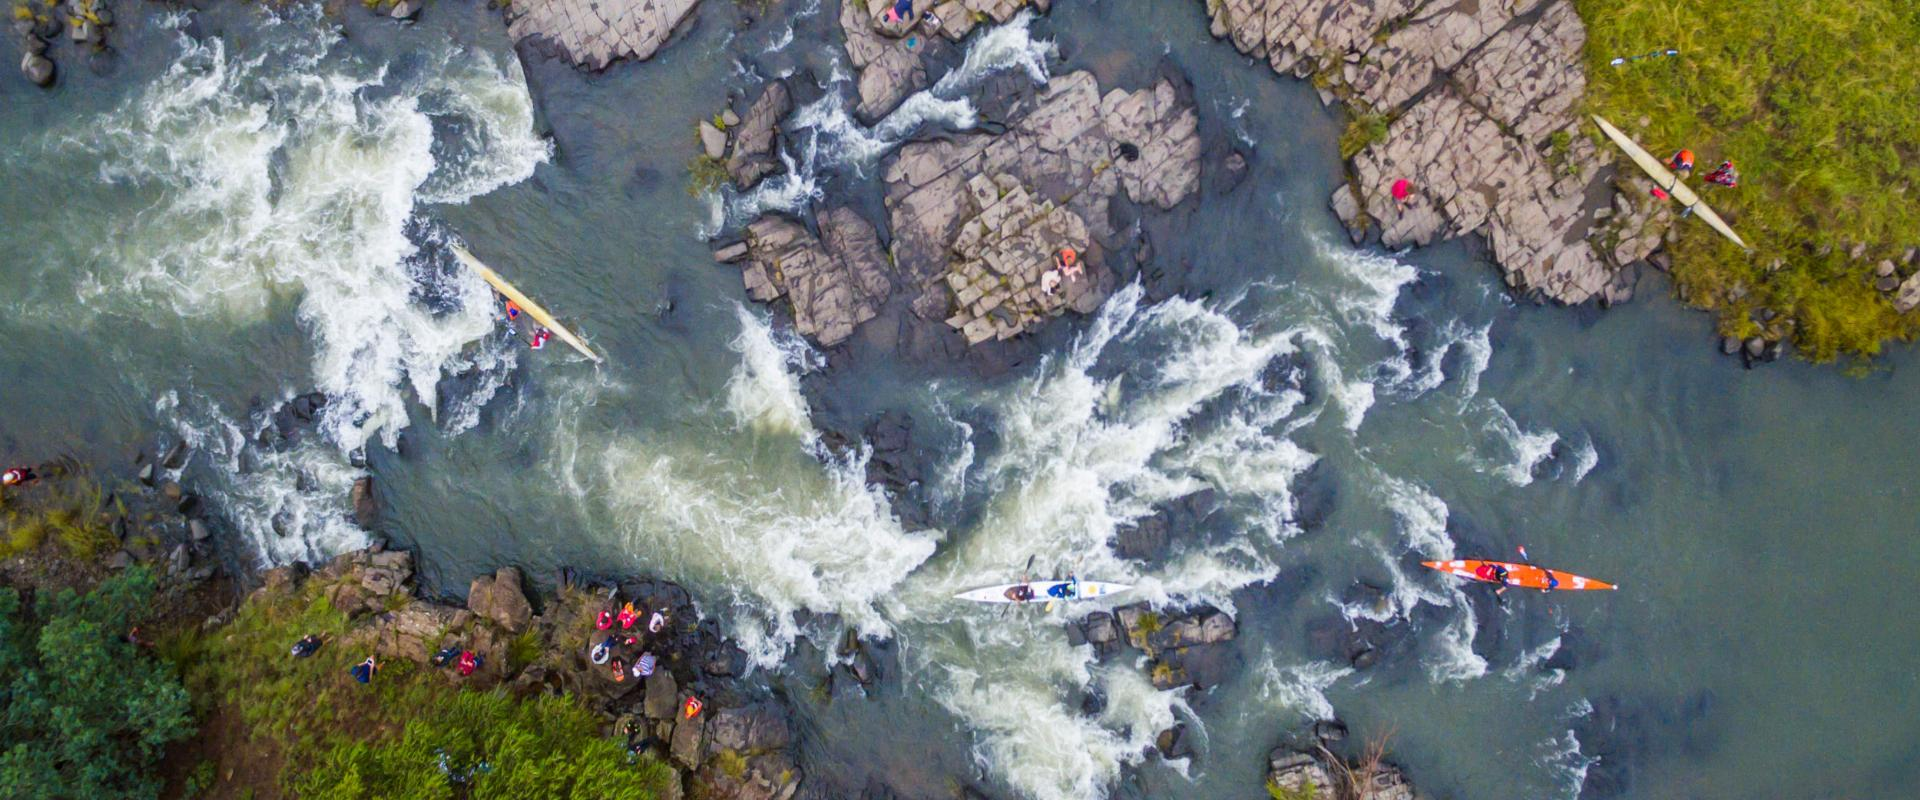 The Valley of a Thousand Rapids is calling….